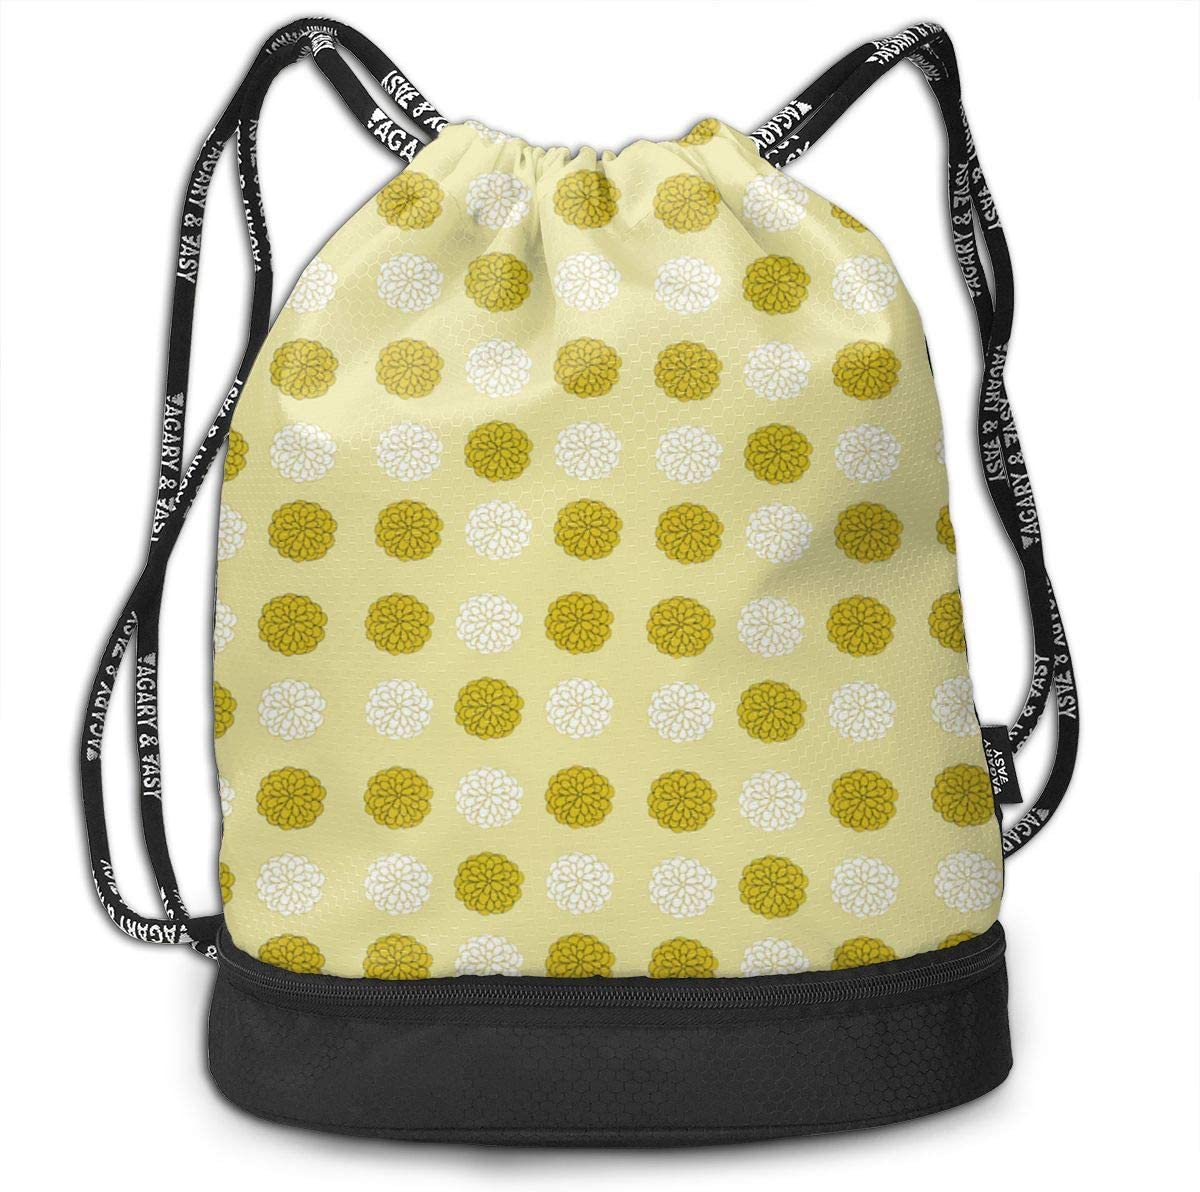 Round Beige Drawstring Backpack Sports Athletic Gym Cinch Sack String Storage Bags for Hiking Travel Beach